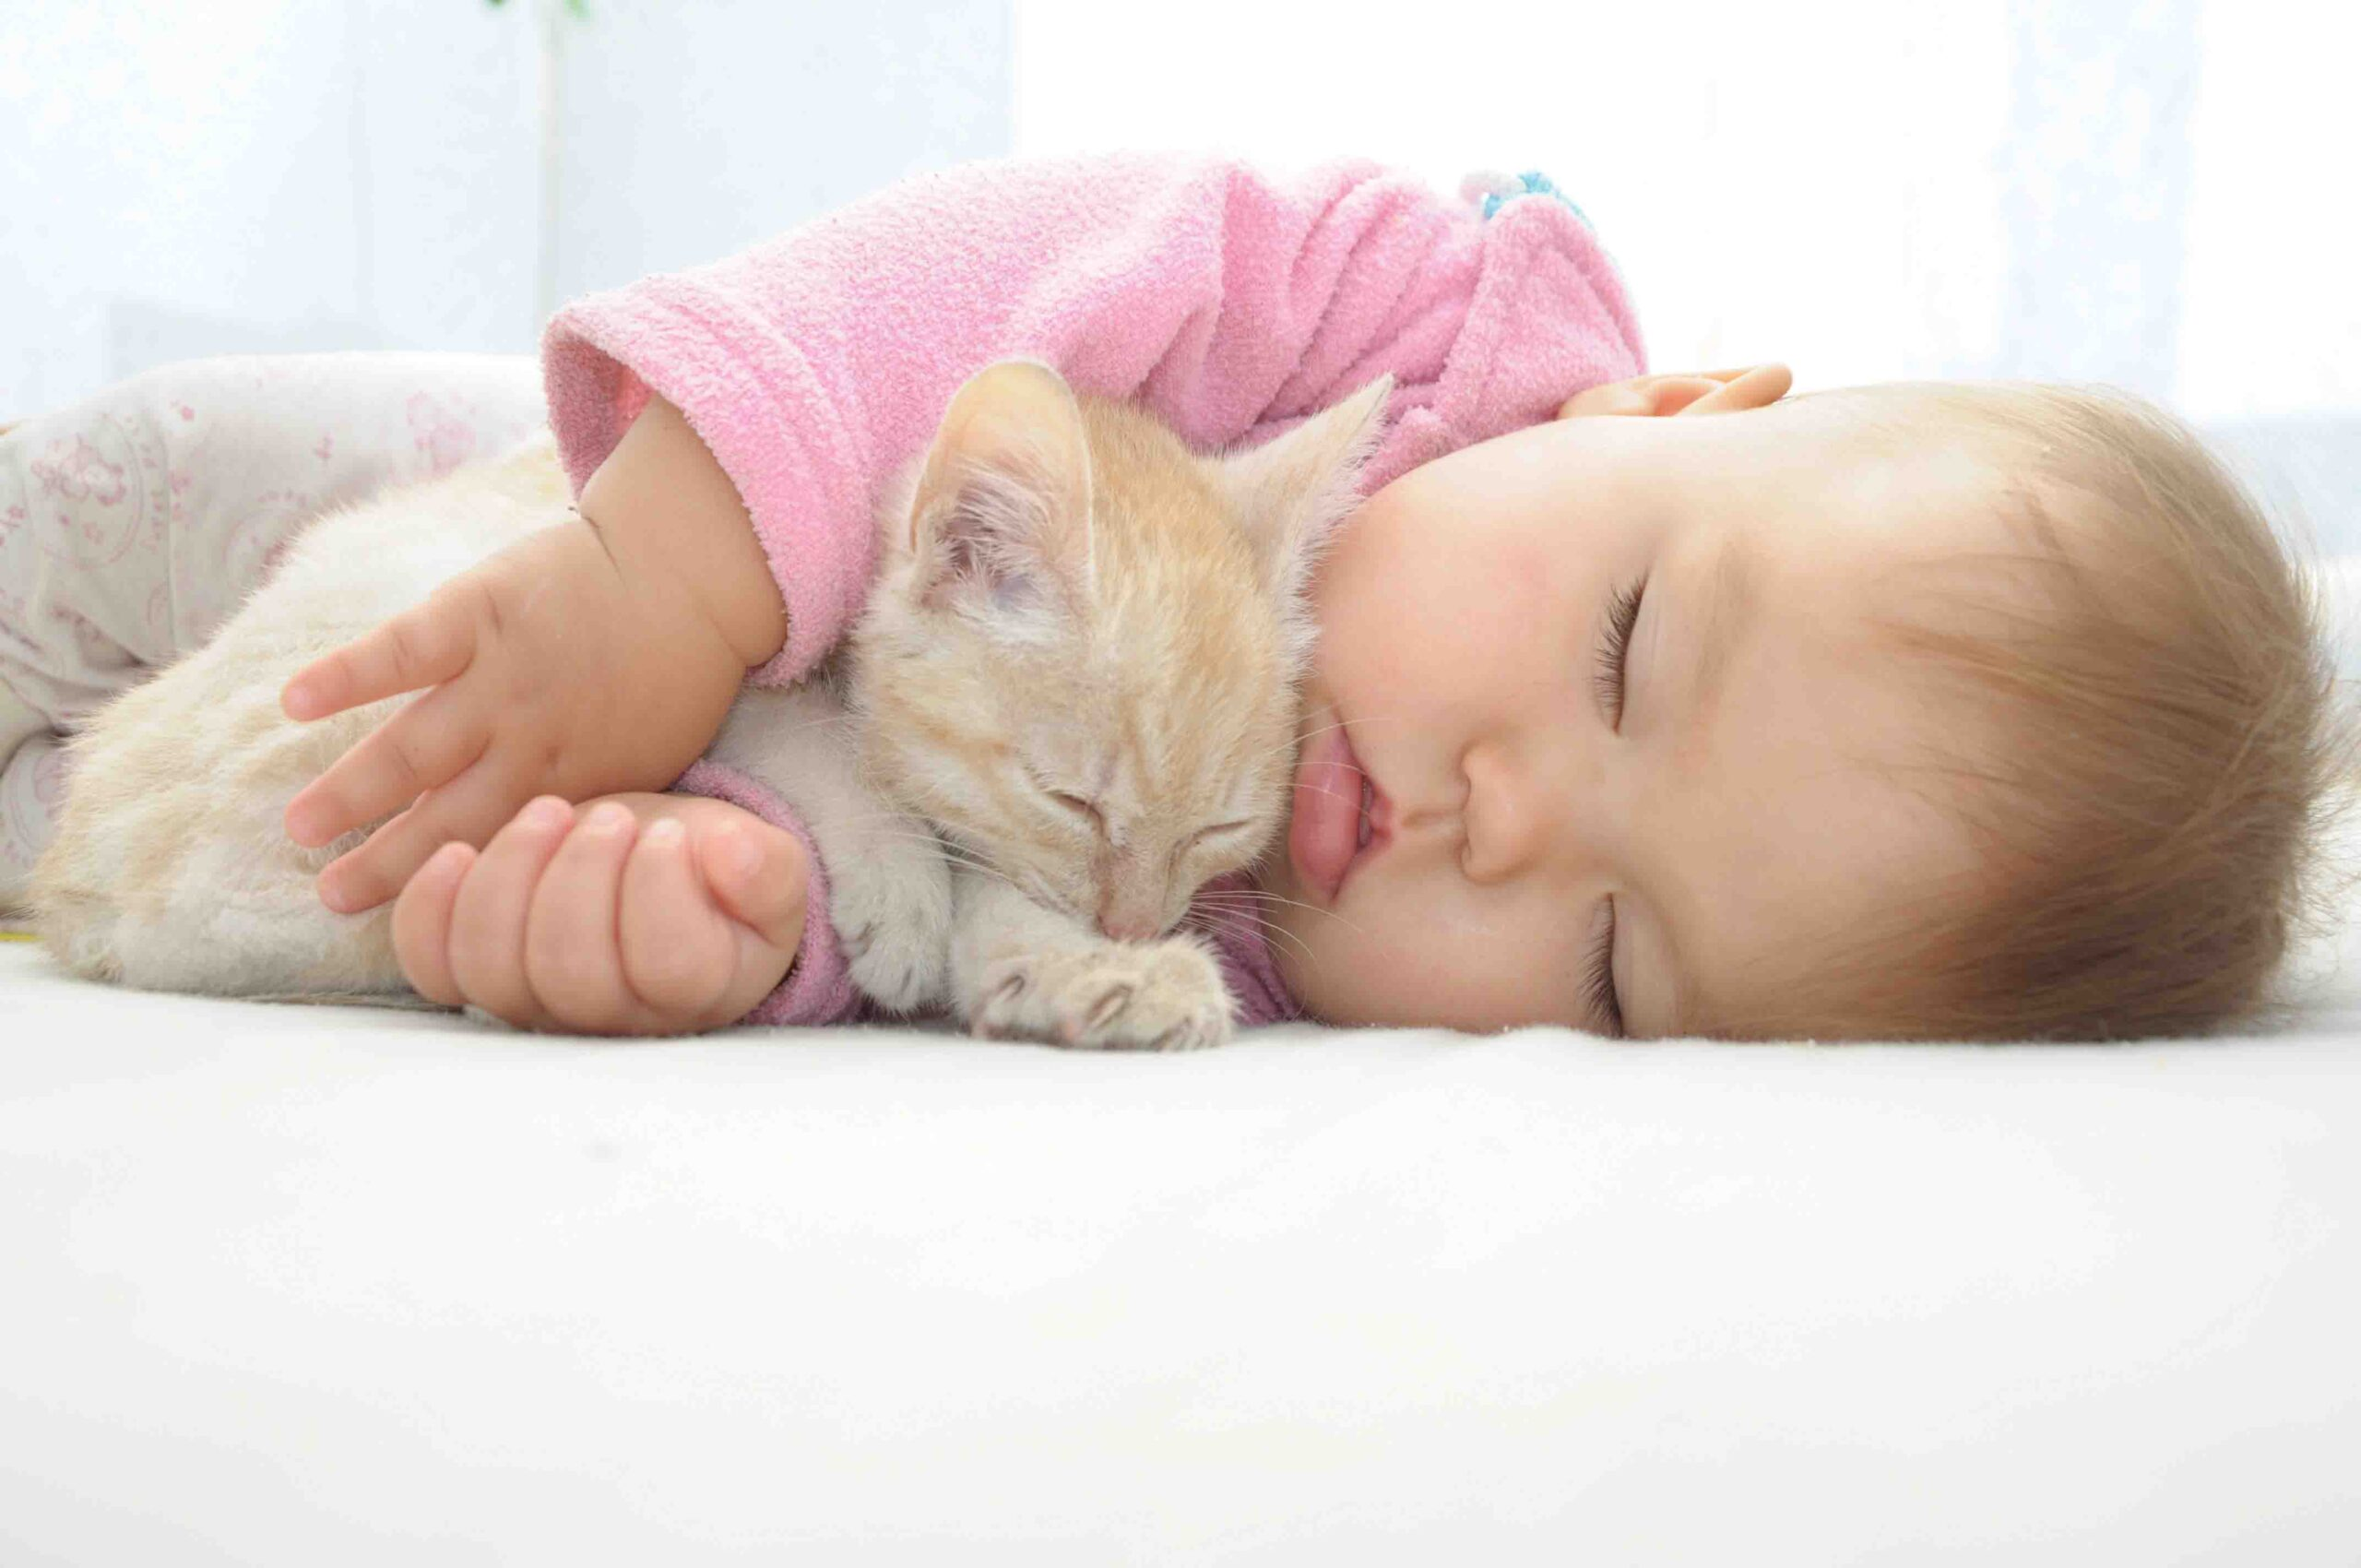 Kittens and babies